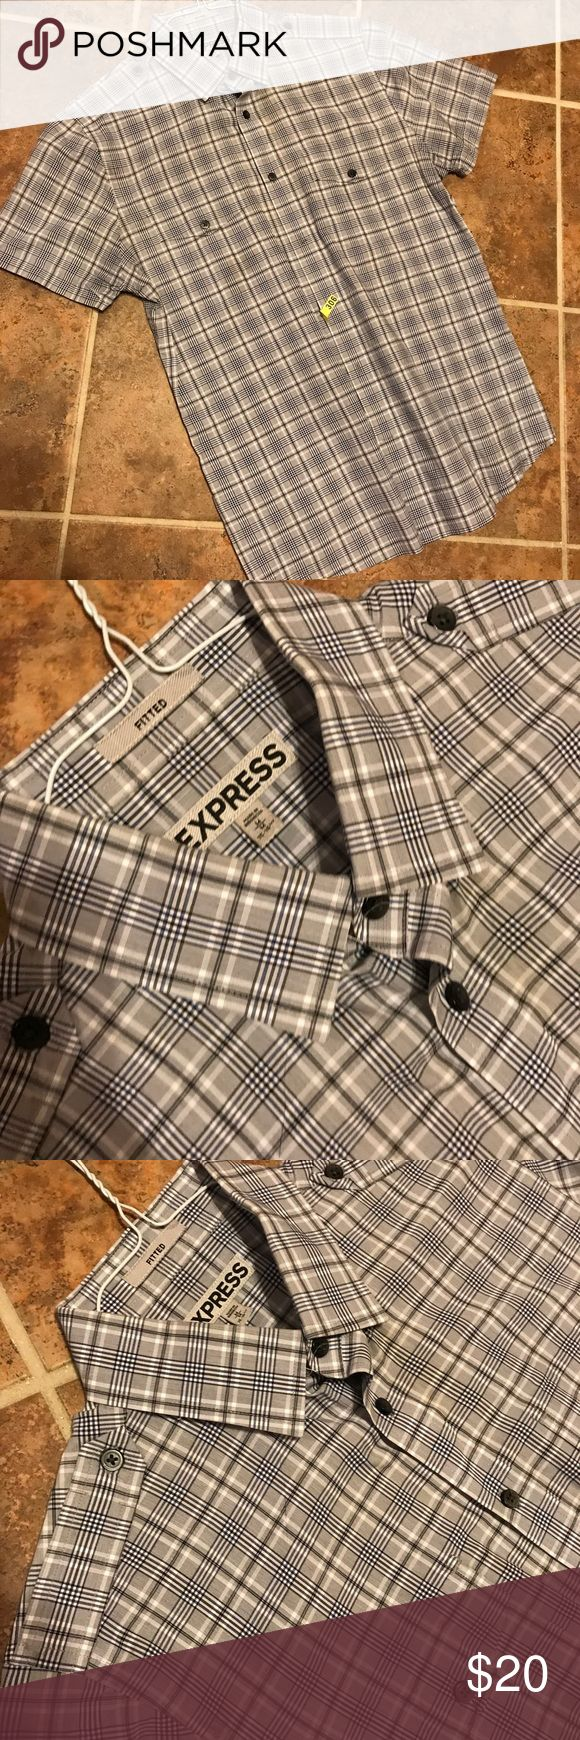 EXPRESS 💁🏻‍♂️🍺 In excellent conditions! Just came back from the dry cleaner 😉 worn twice.... cute and perfect for any conditions! Any questions please feel free to ask! 😘 bundles of 2 items or more have additional 15% off Express Shirts Dress Shirts